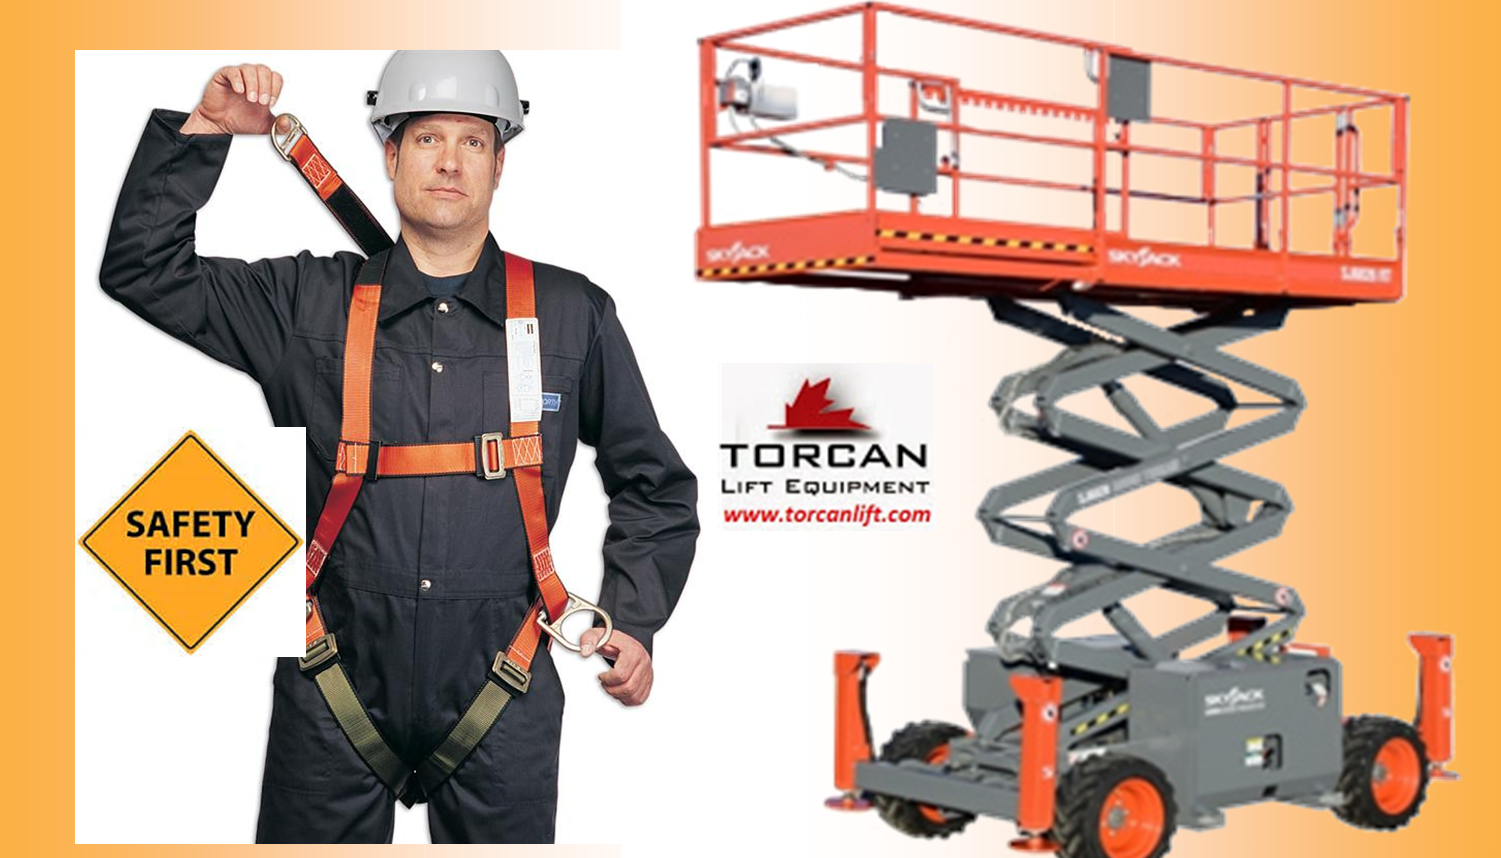 Scissor lift training & safety